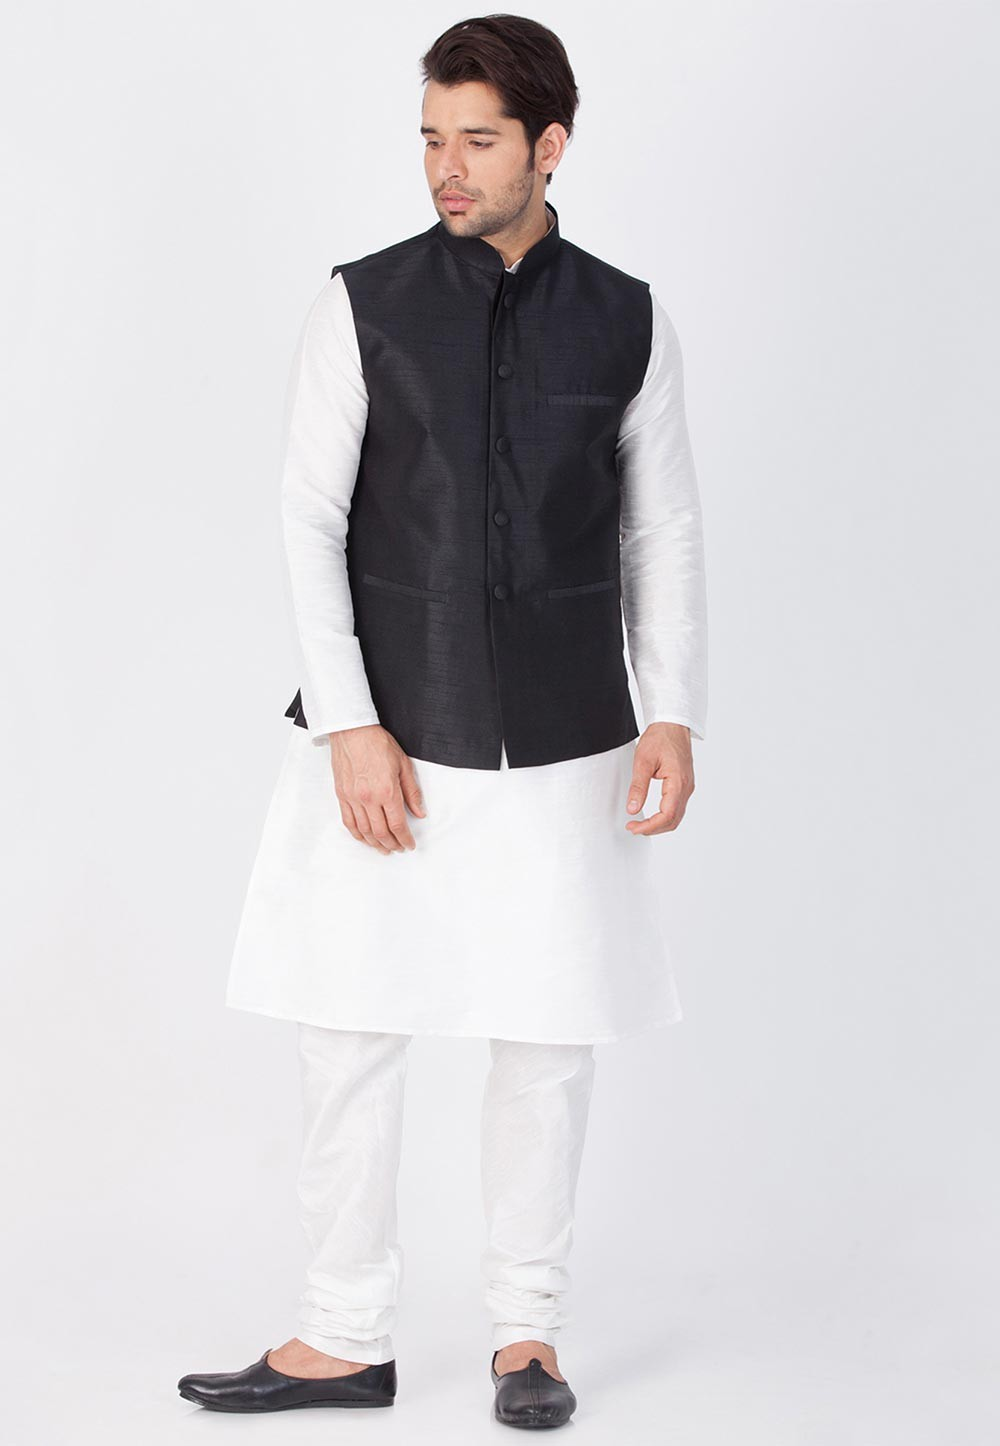 White,Black Color Kurta Pajama with Jacket